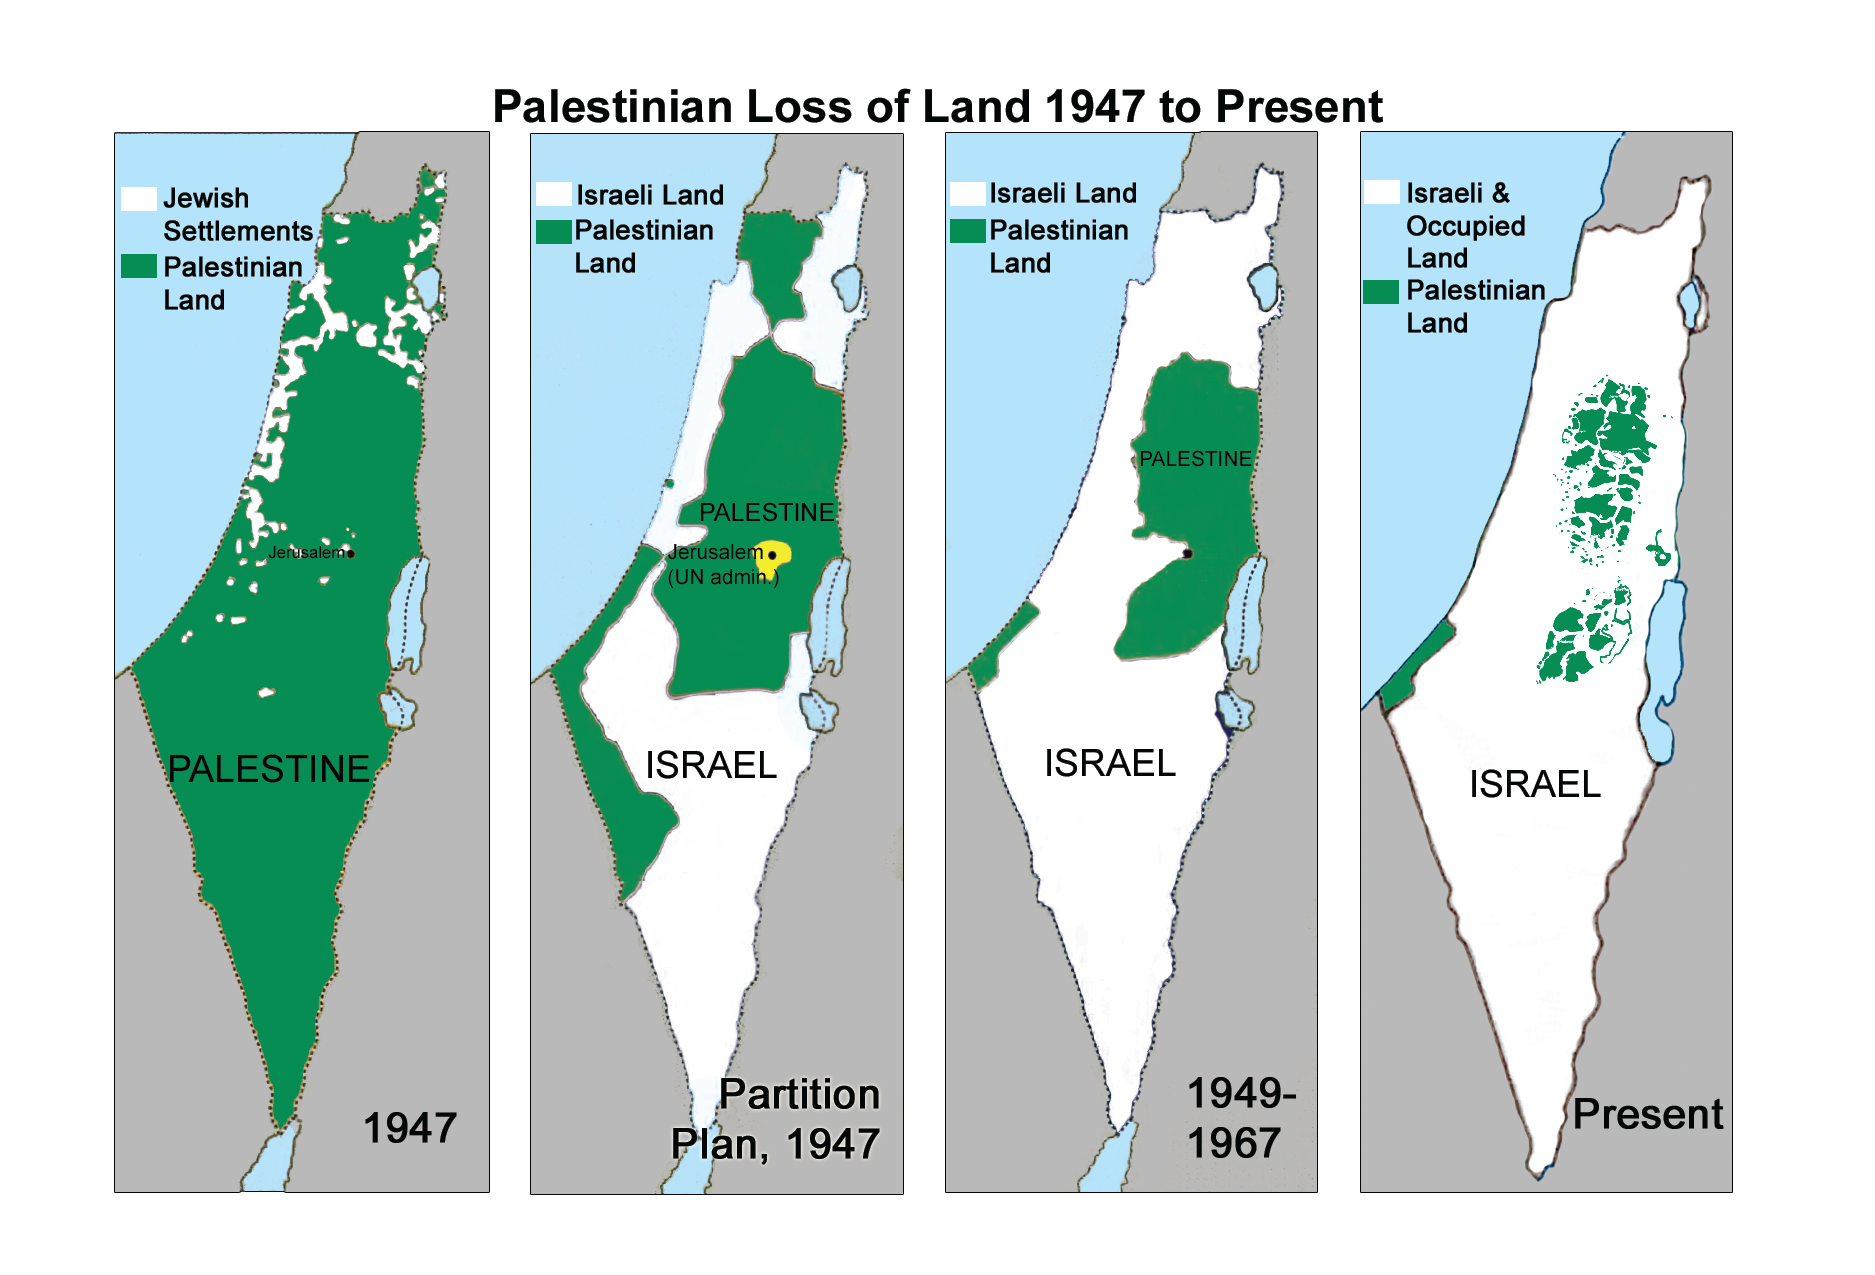 http://palsolidarity.org/wp-content/uploads/2013/06/shrinking-map-of-palestine.png